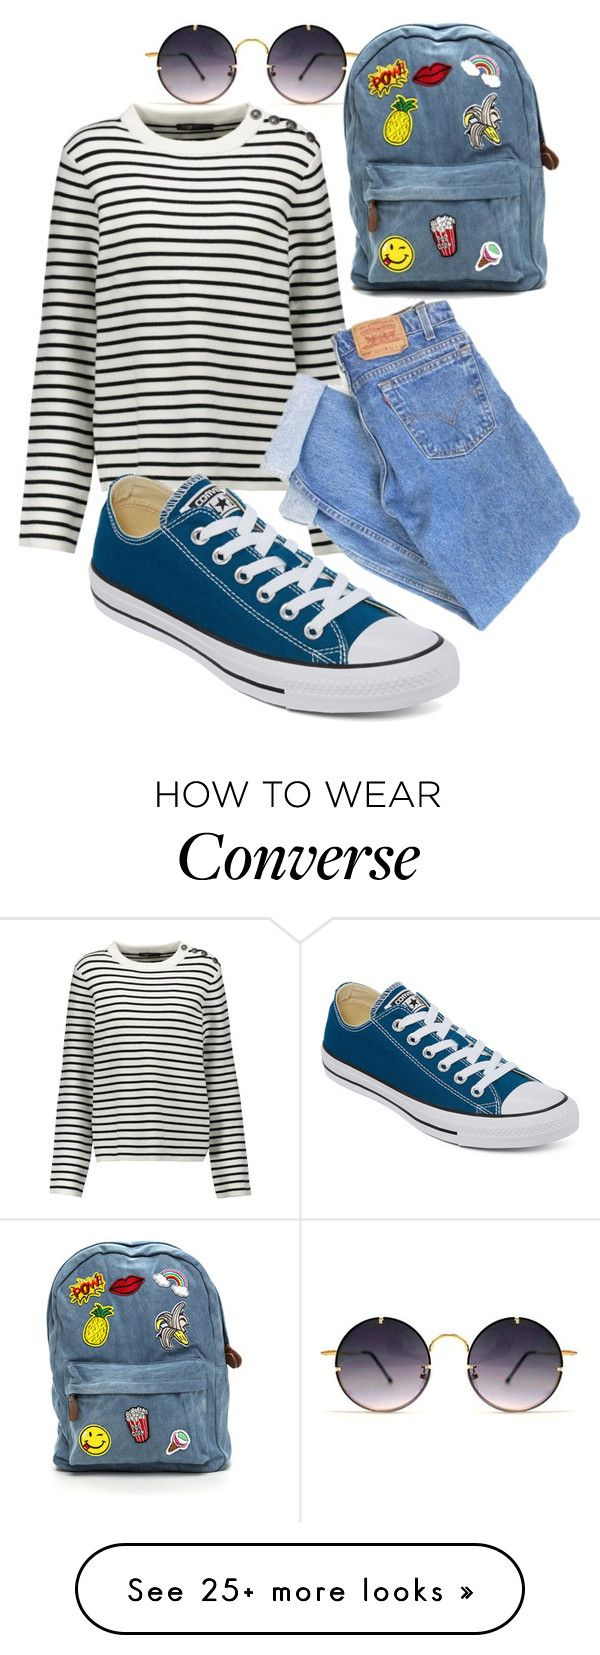 """""""converse: Blue Lagoon"""" by haylee-borthwick on Polyvore featuring Spitfire, Maje, Converse and Levi's"""